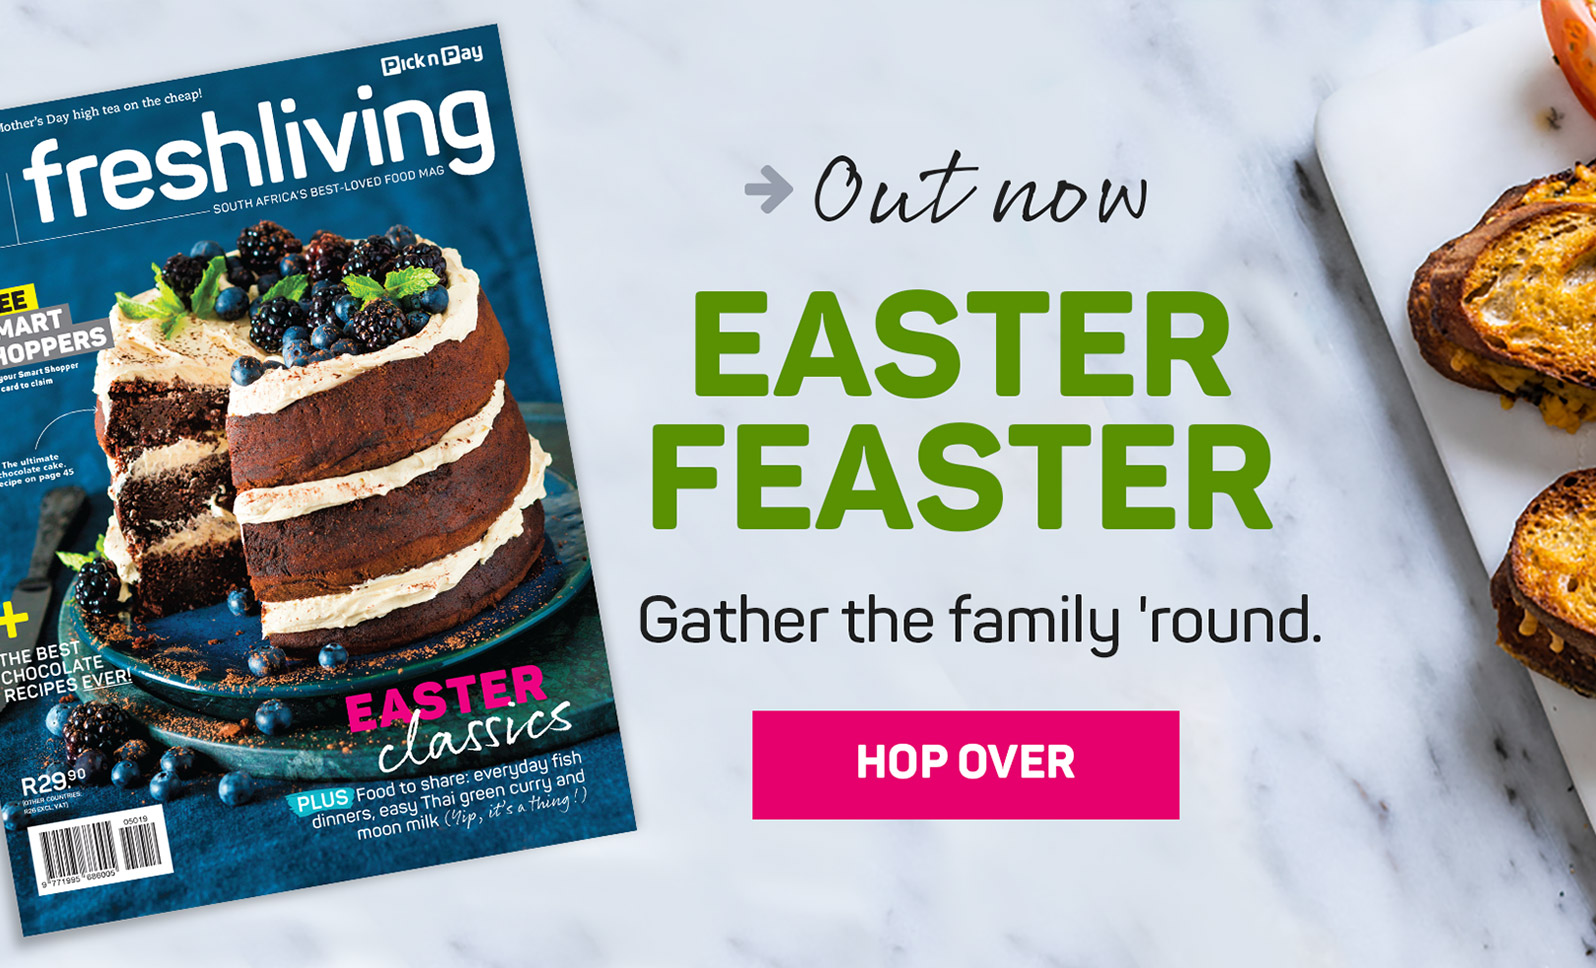 Out now. EASTER FEASTER. Gather the family 'round. Hop over